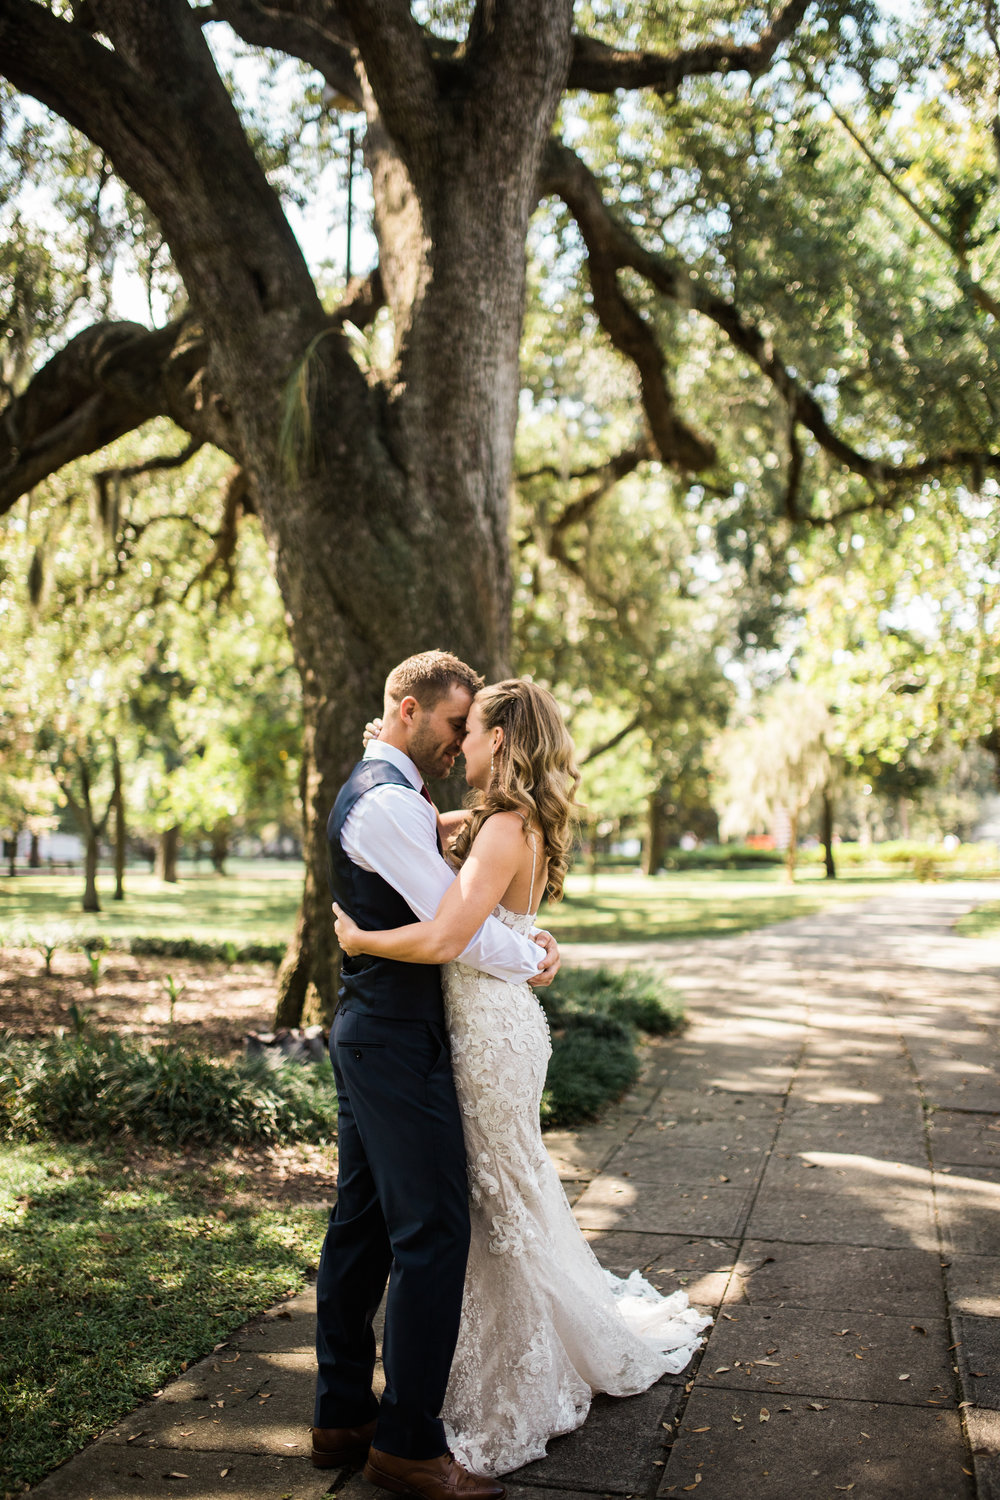 ivory_and_beau_savannah_bridal_shop_bridal_suite_ivory_and_beau_couple_allie_danny_wedding_savannah_bride_Savannah_wedding_savannah_brides_9.jpg